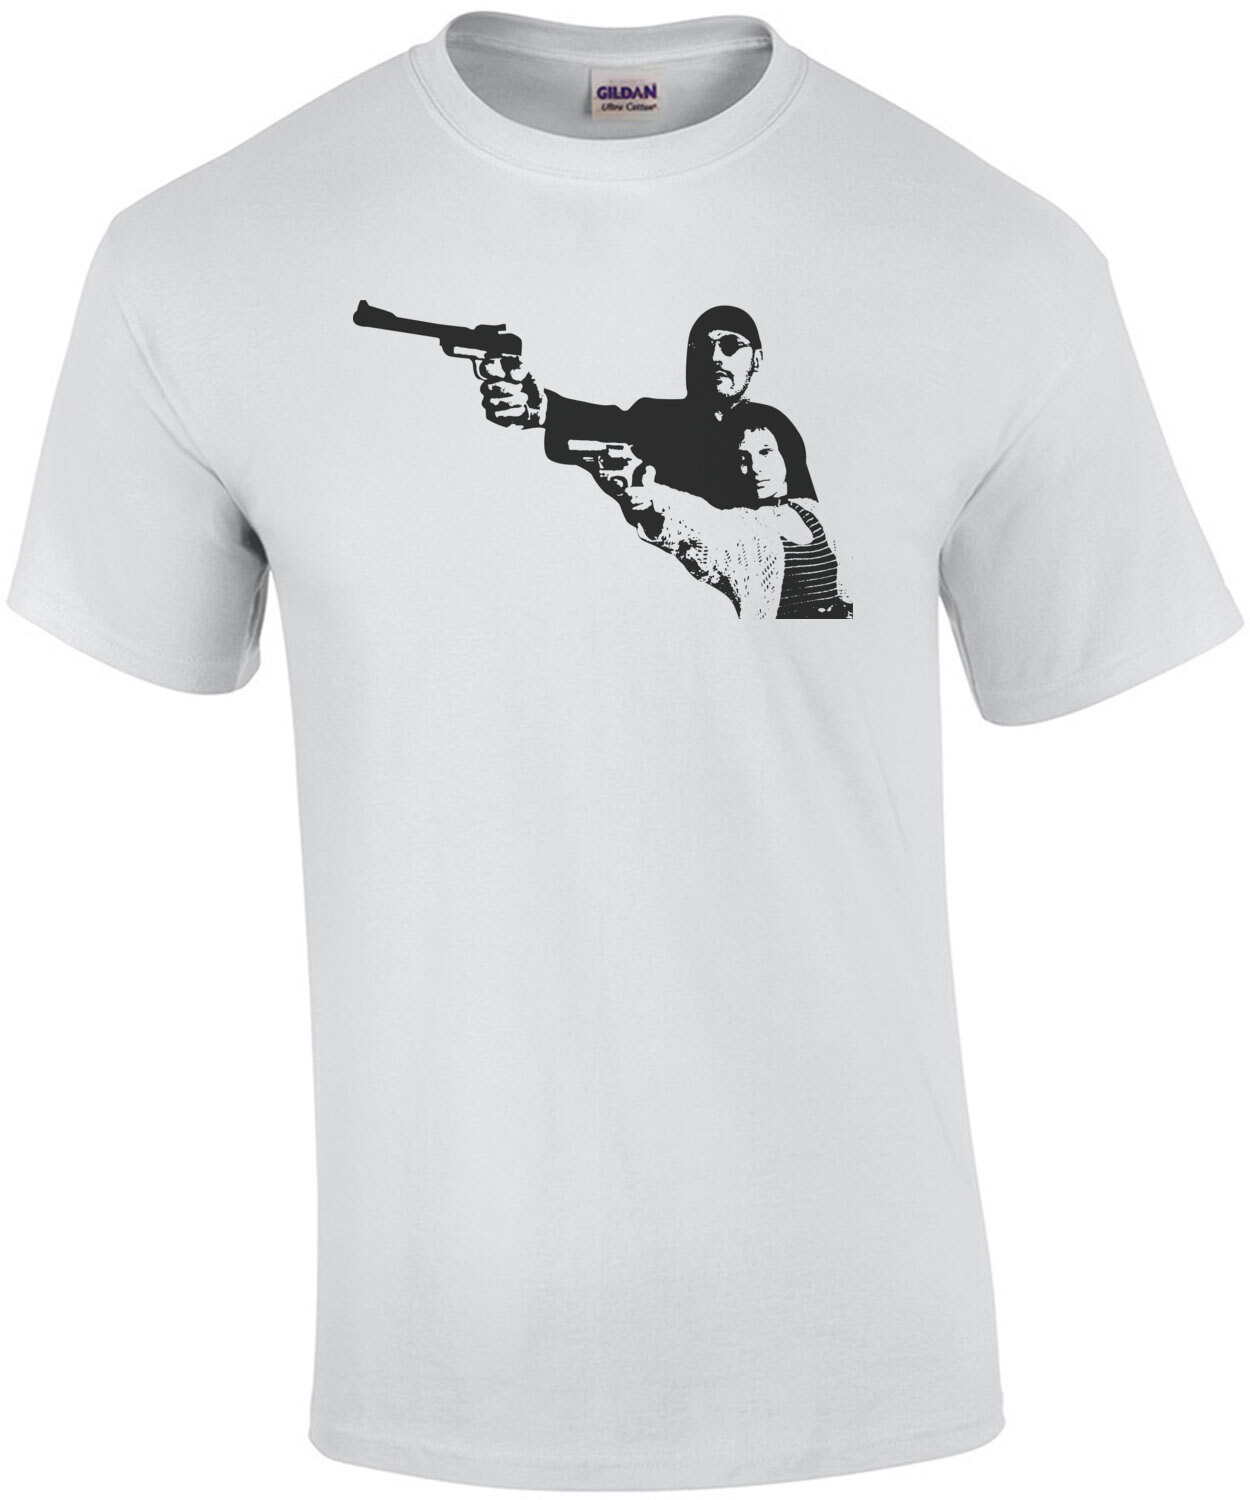 Leon - The Professional - 90's T-Shirt